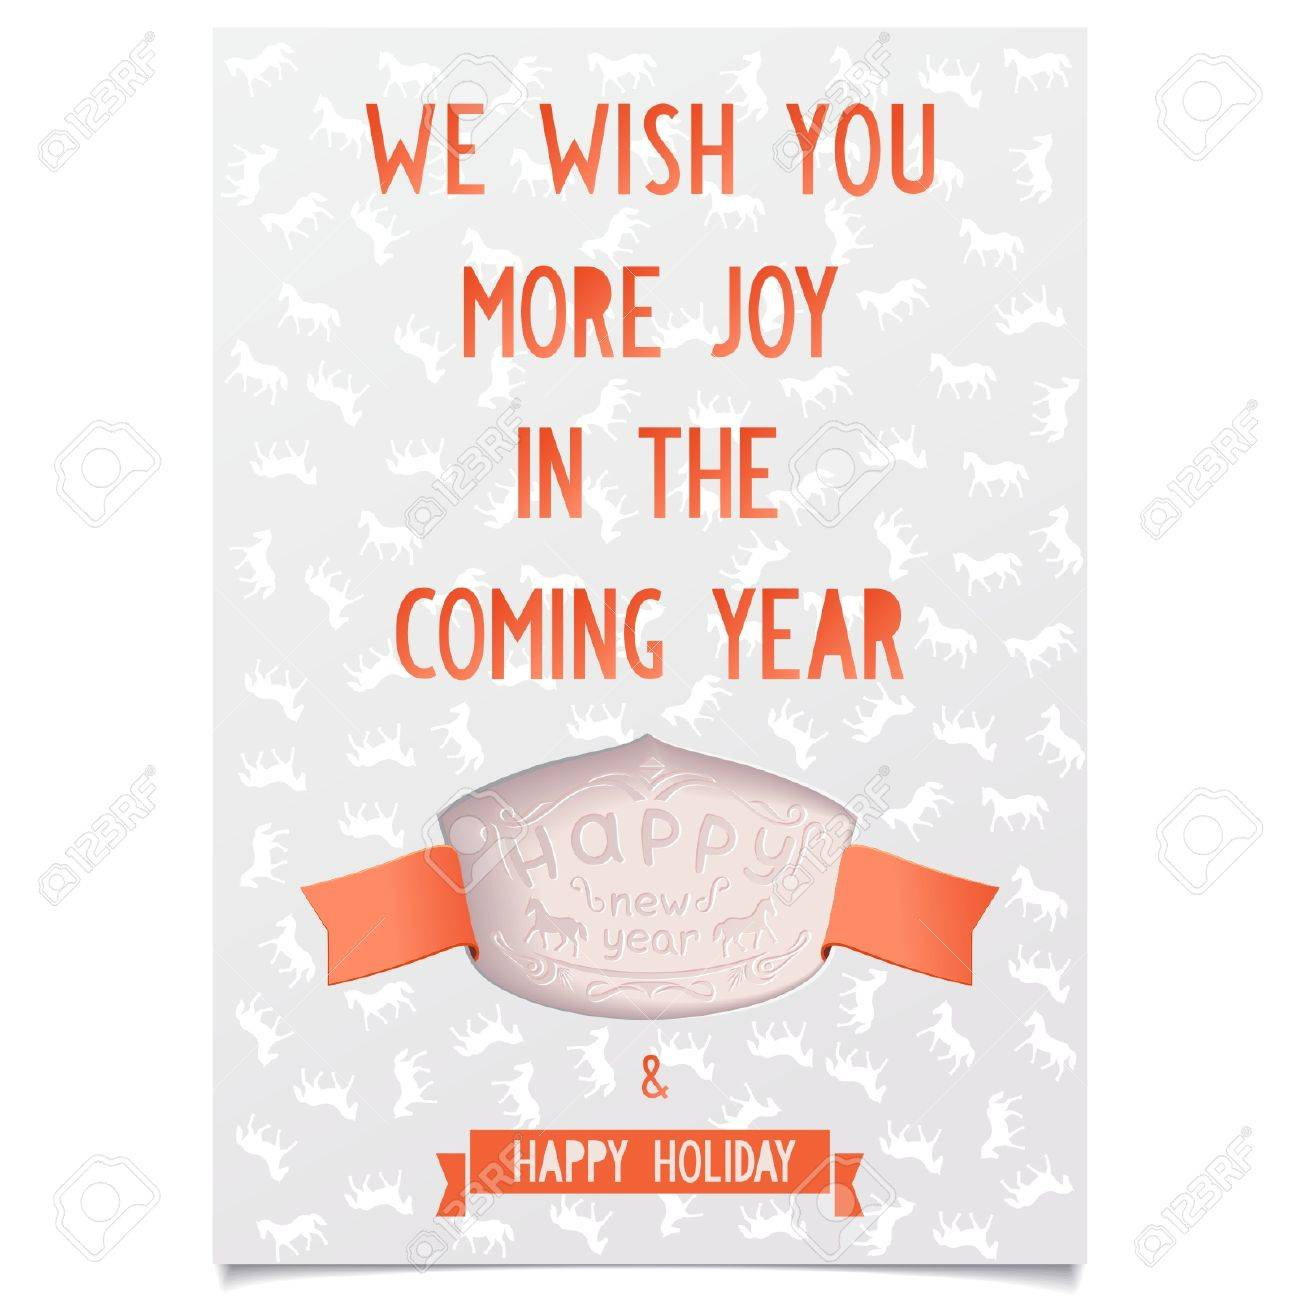 template new year greeting card with wishes of joy and happy holidays on a many horse